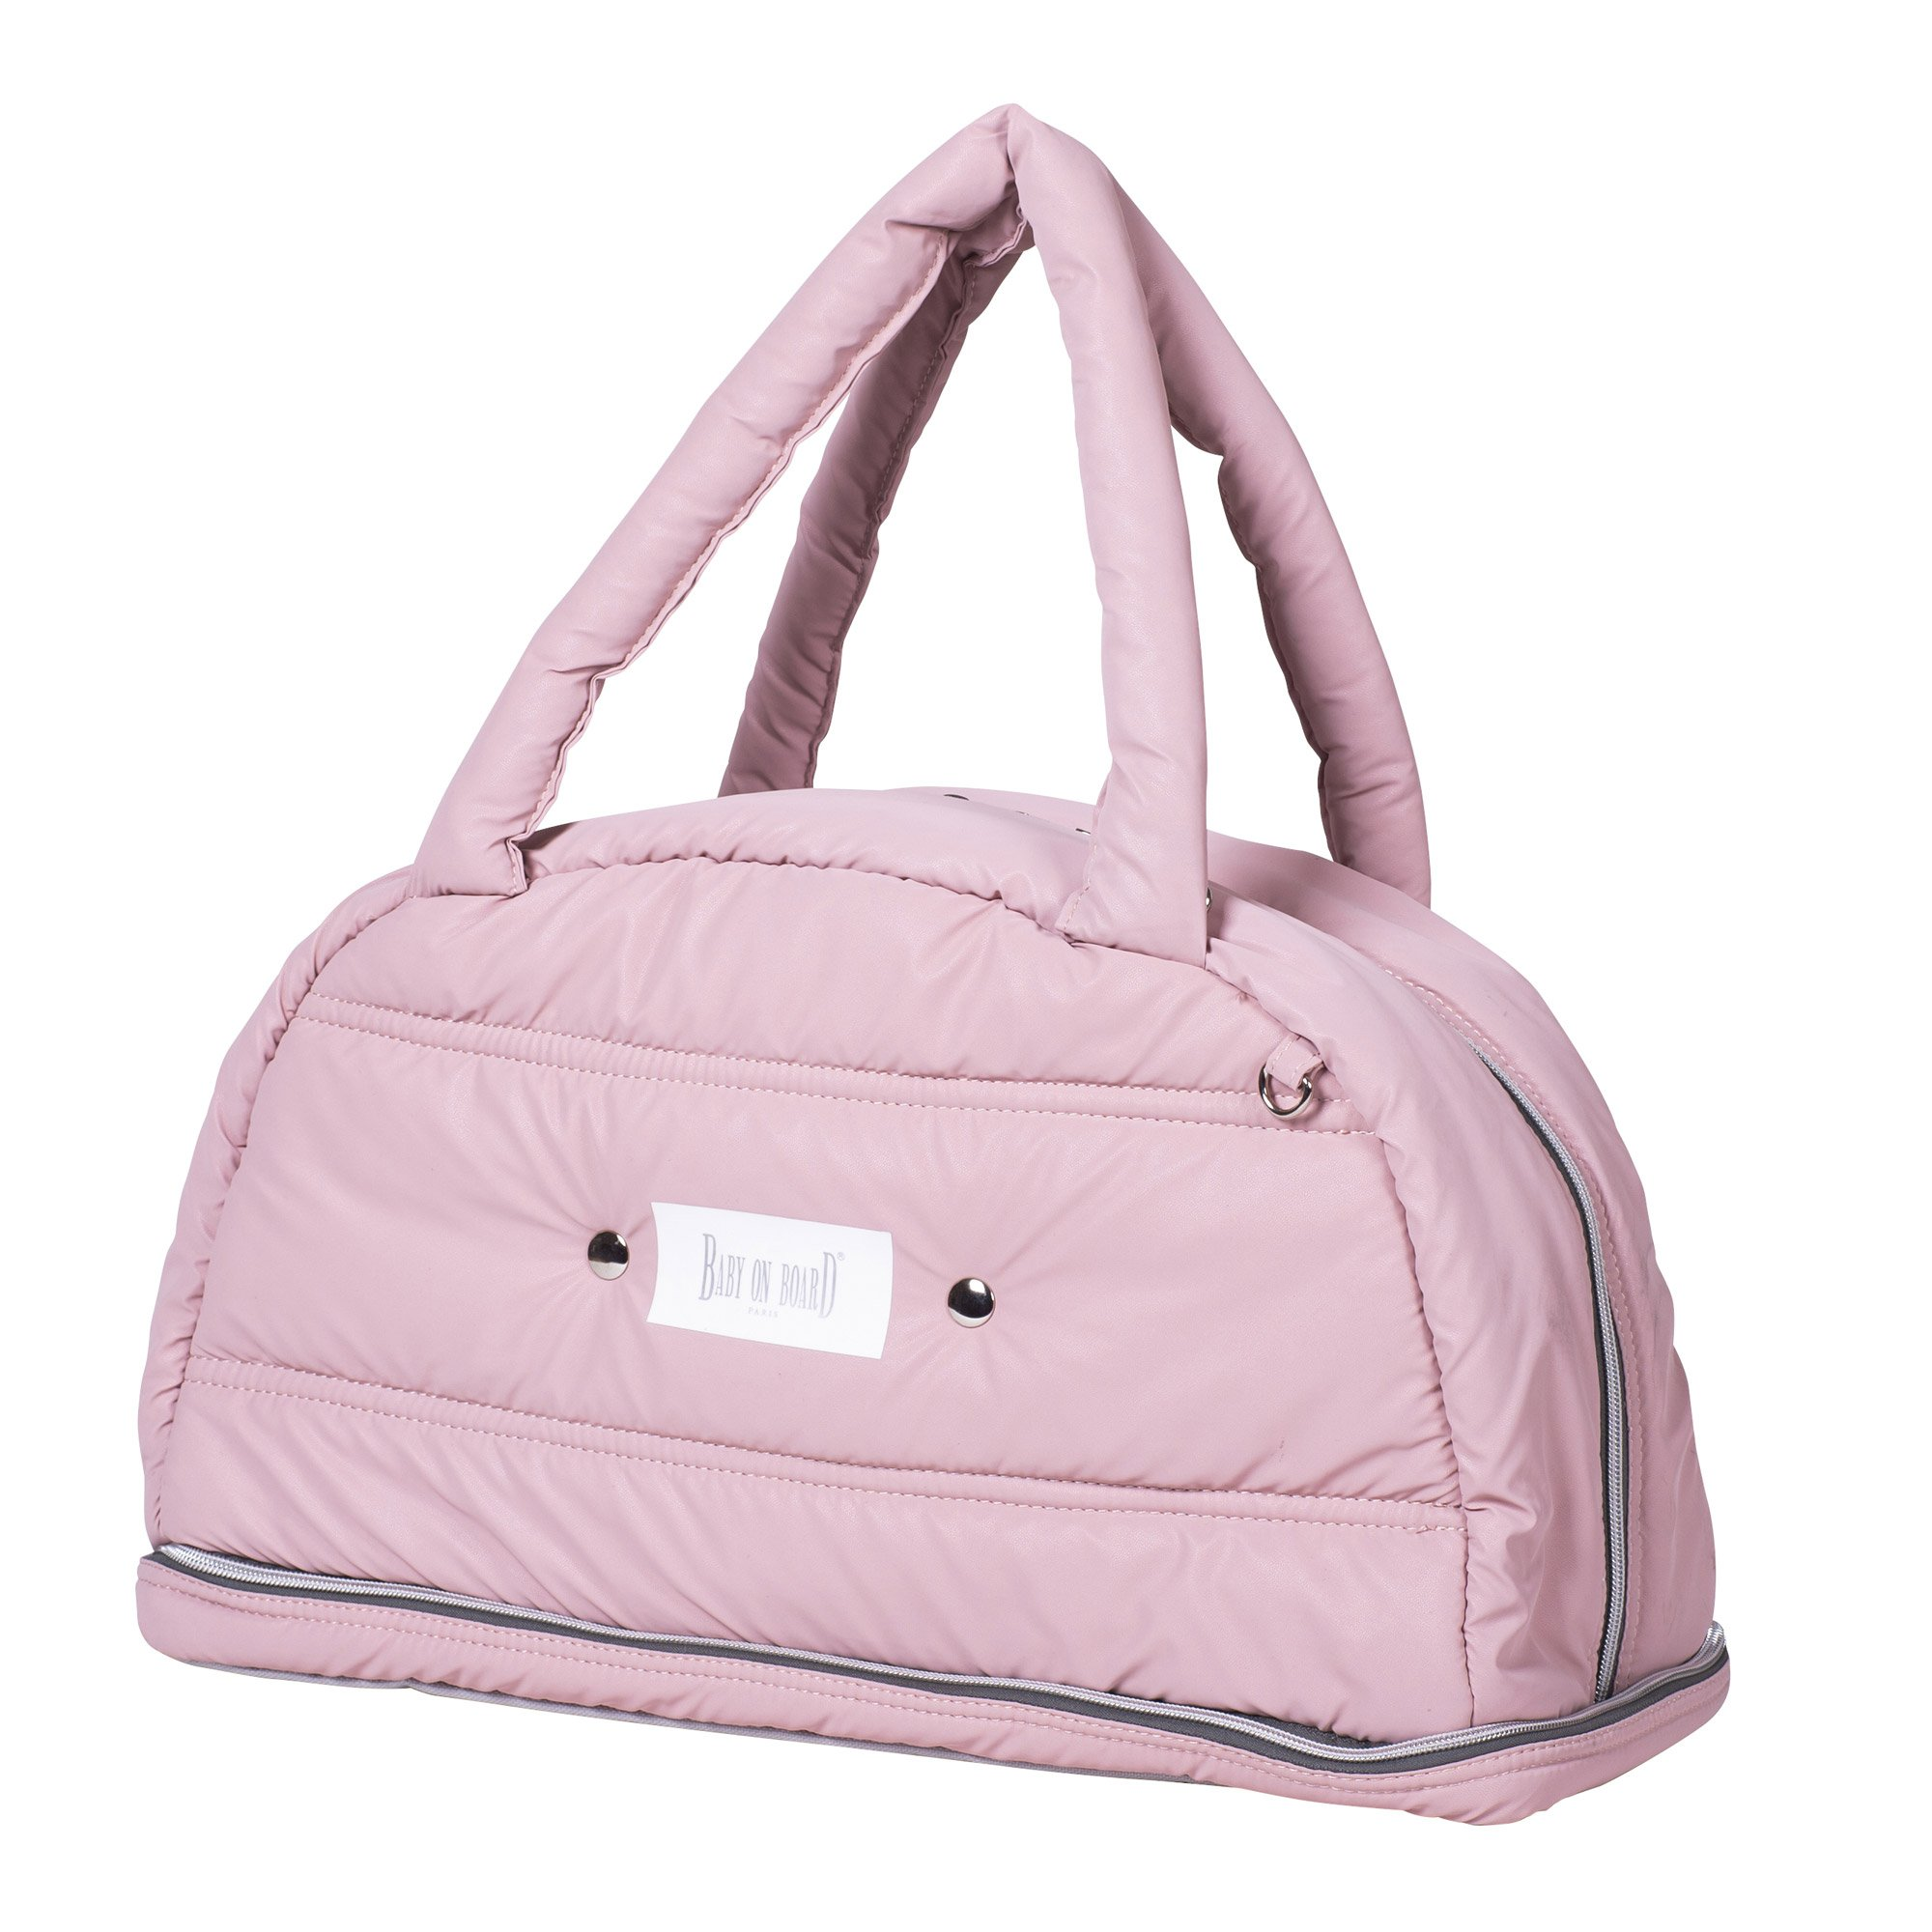 Sac doudoune Chic in rose  de Baby On Board